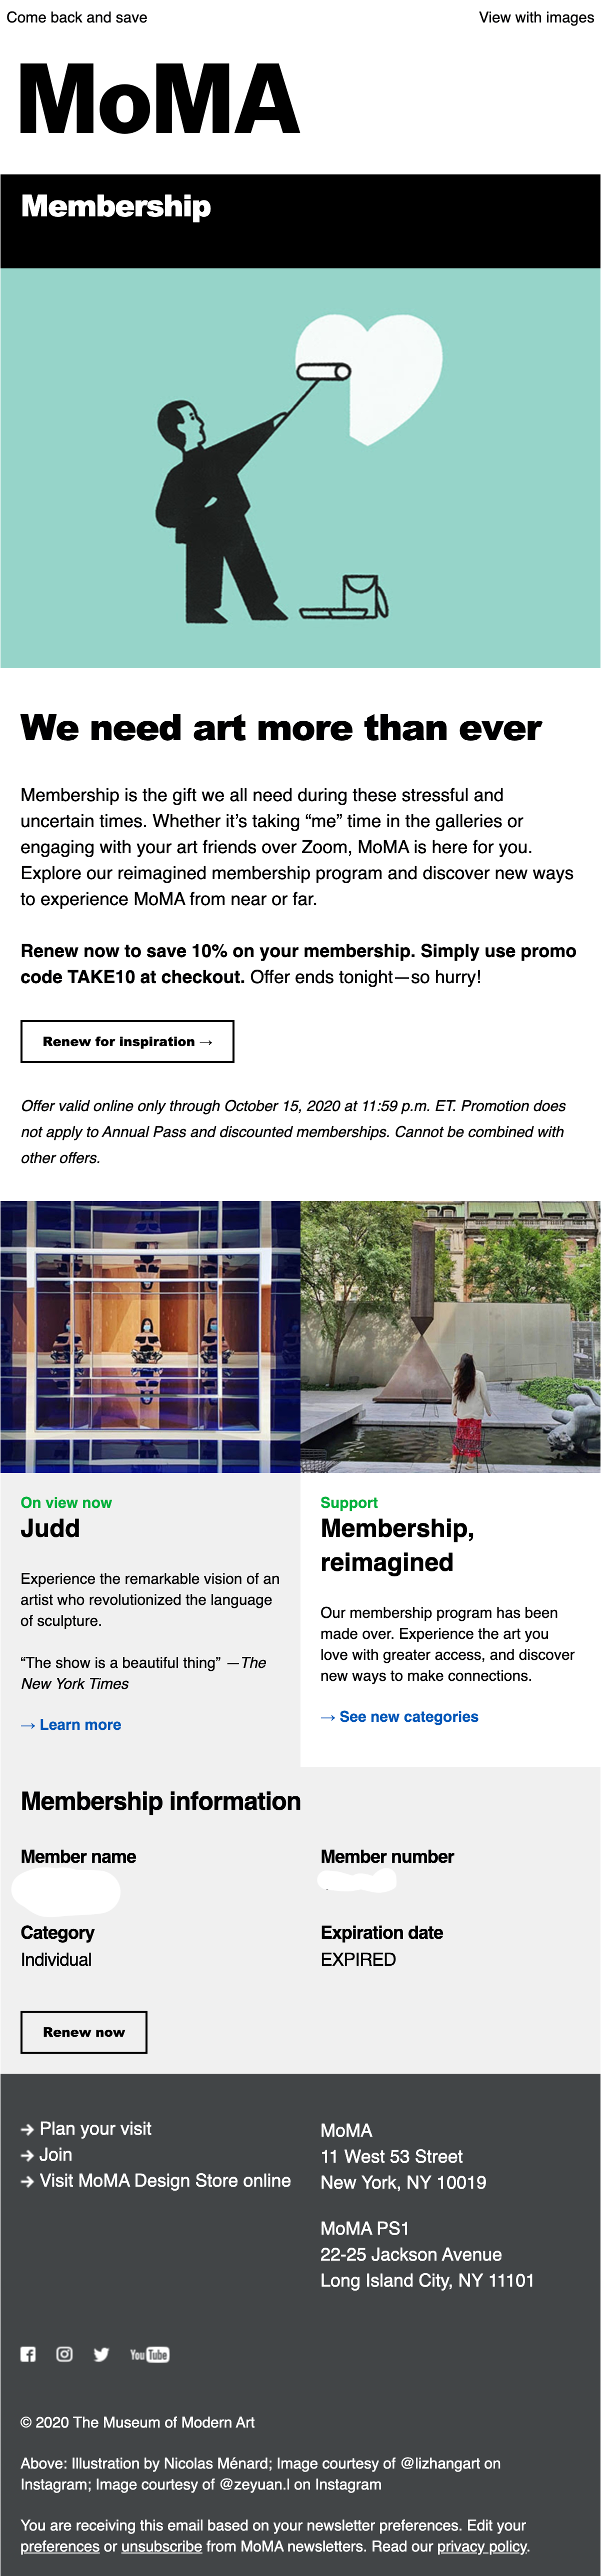 membership renewal email example